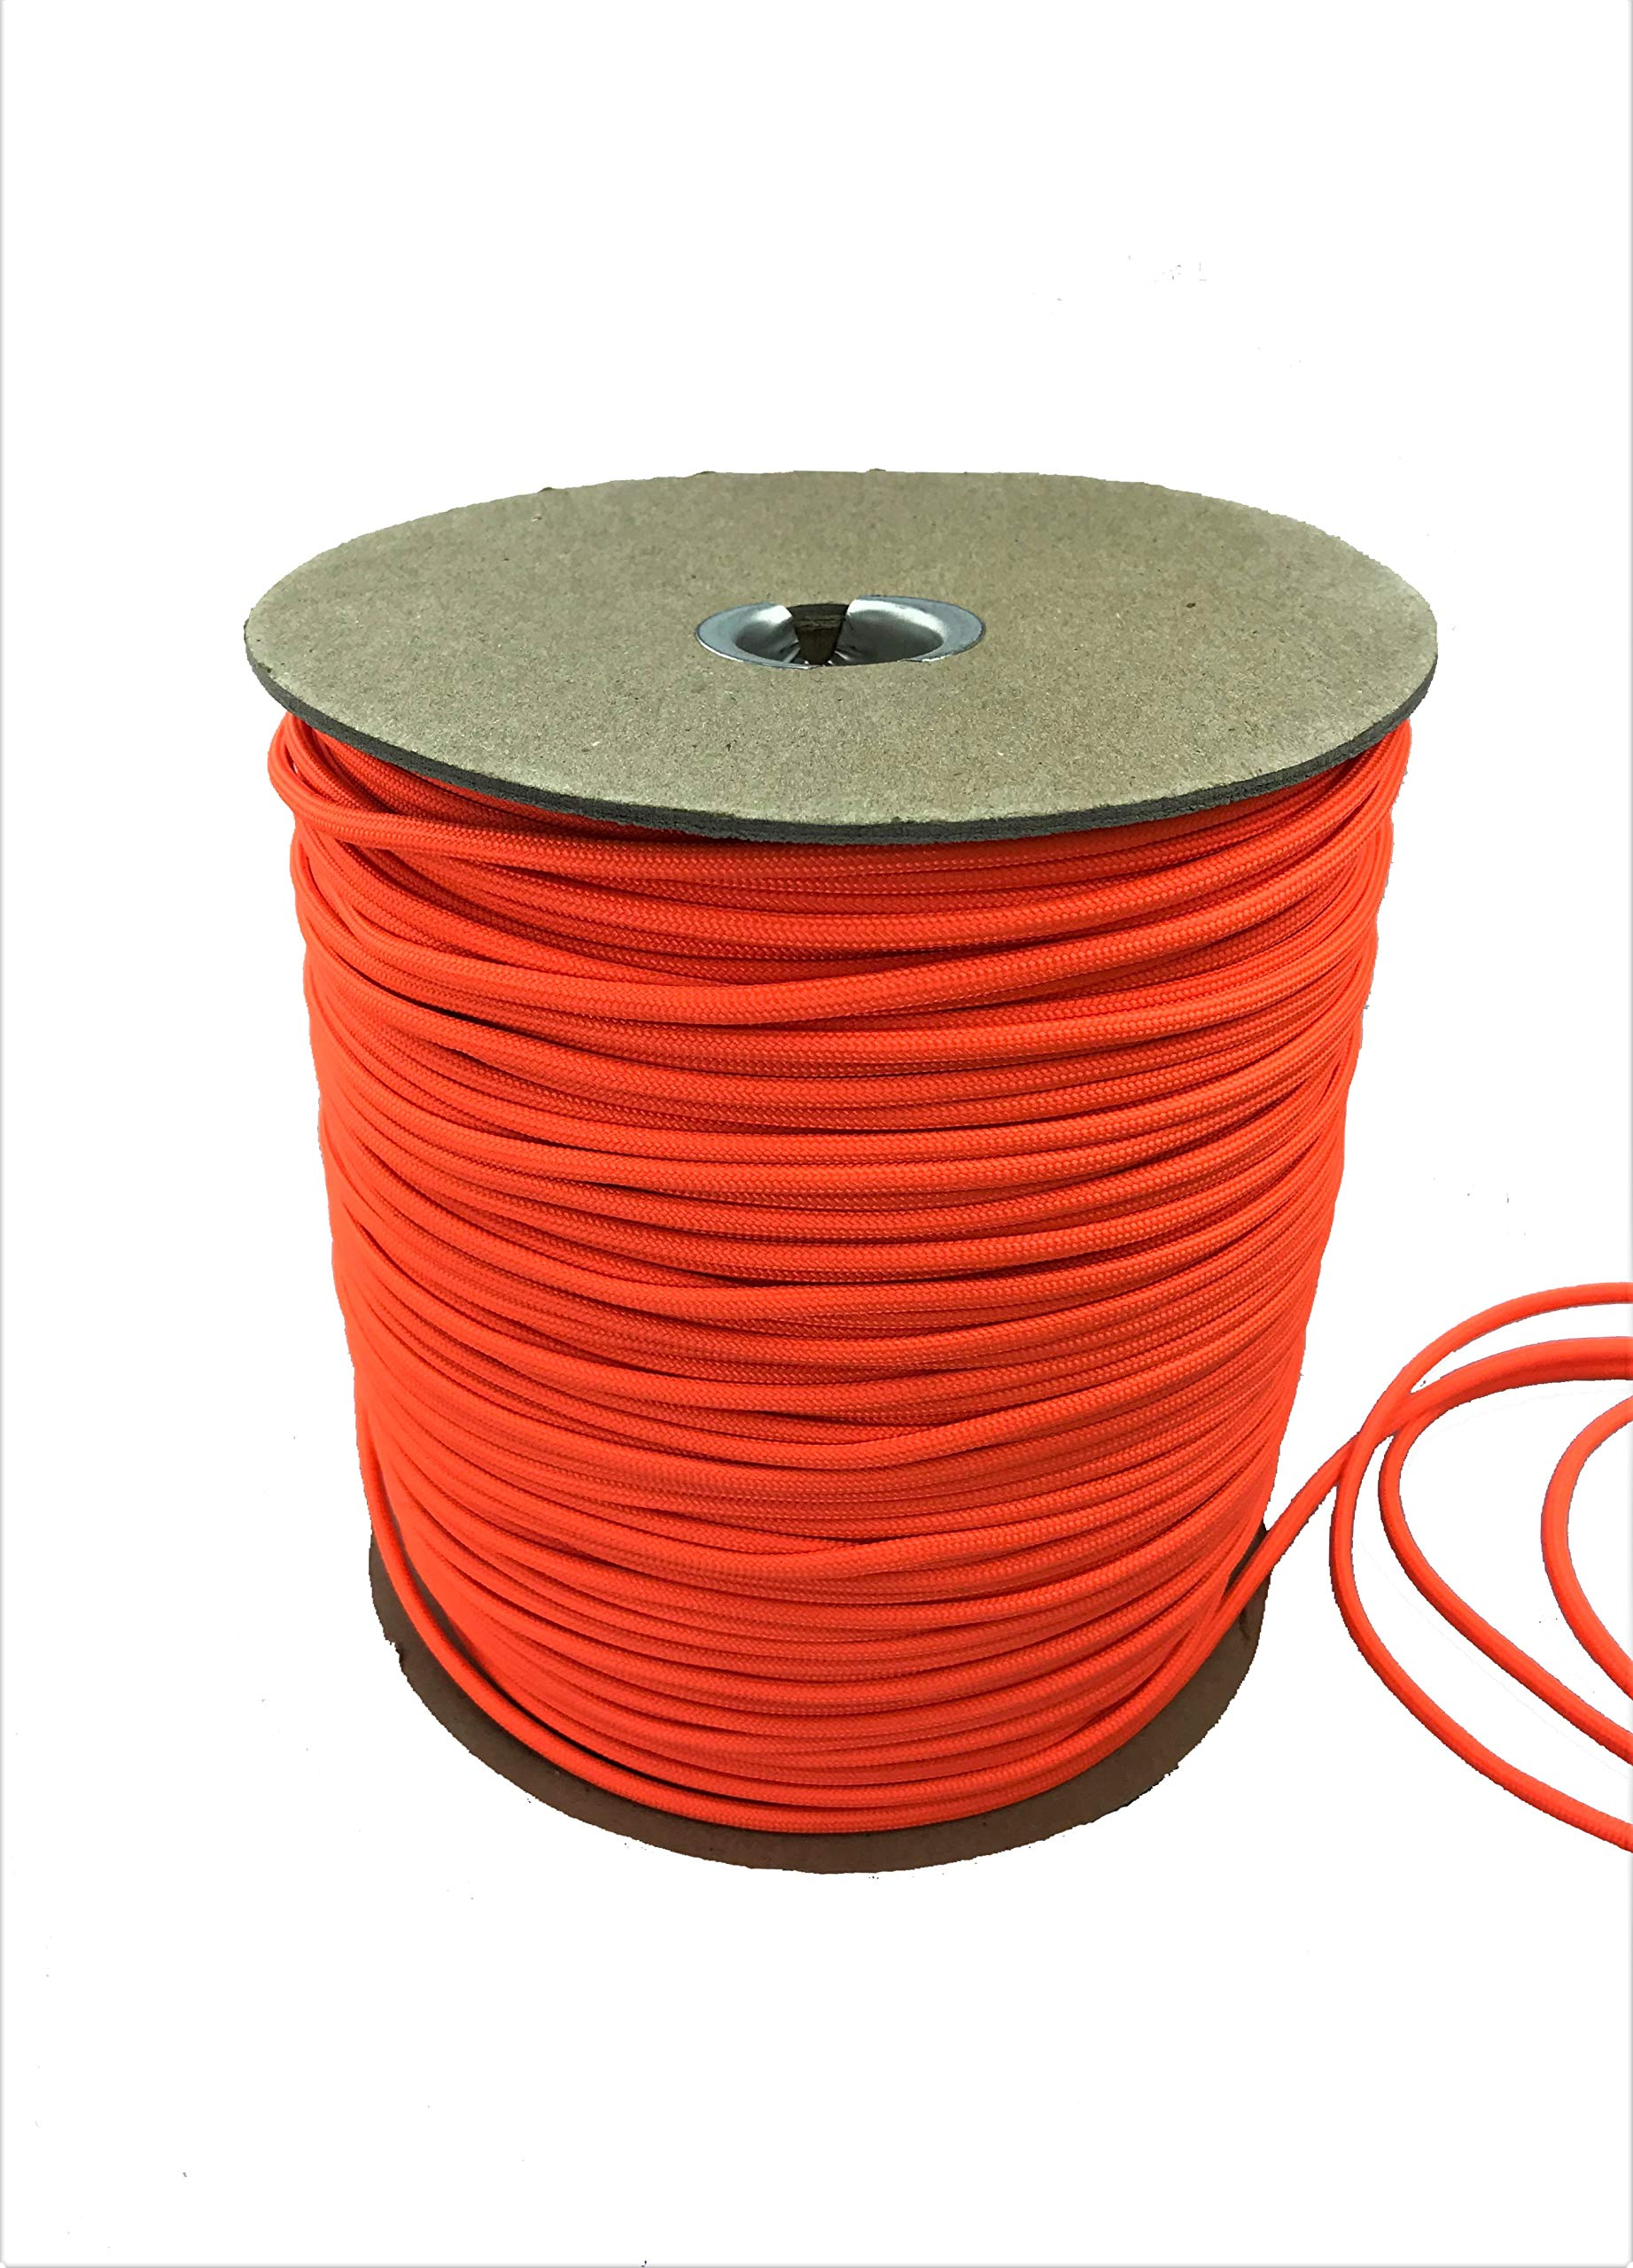 Paracord 550 Type III 7 Strand Multi-Purpose Parachute Cord in 1000 and 100 Foot Spools. Used for Camping, Hiking, Boating, Survival, and Crafting. 100% Nylon-Made in the USA (Orange, 1000)